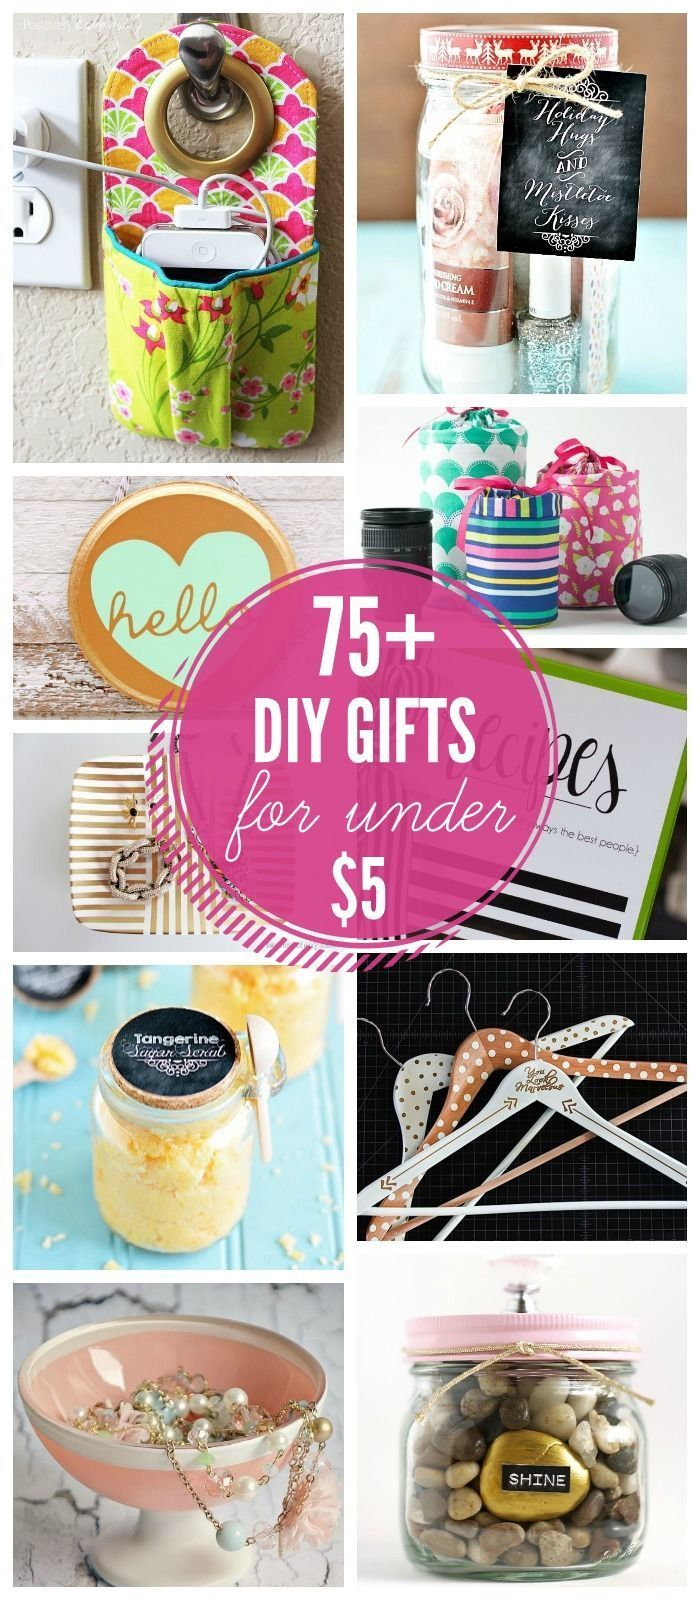 75+ Handmade Gift Ideas for under $5 - a great collection on { lilluna.com }